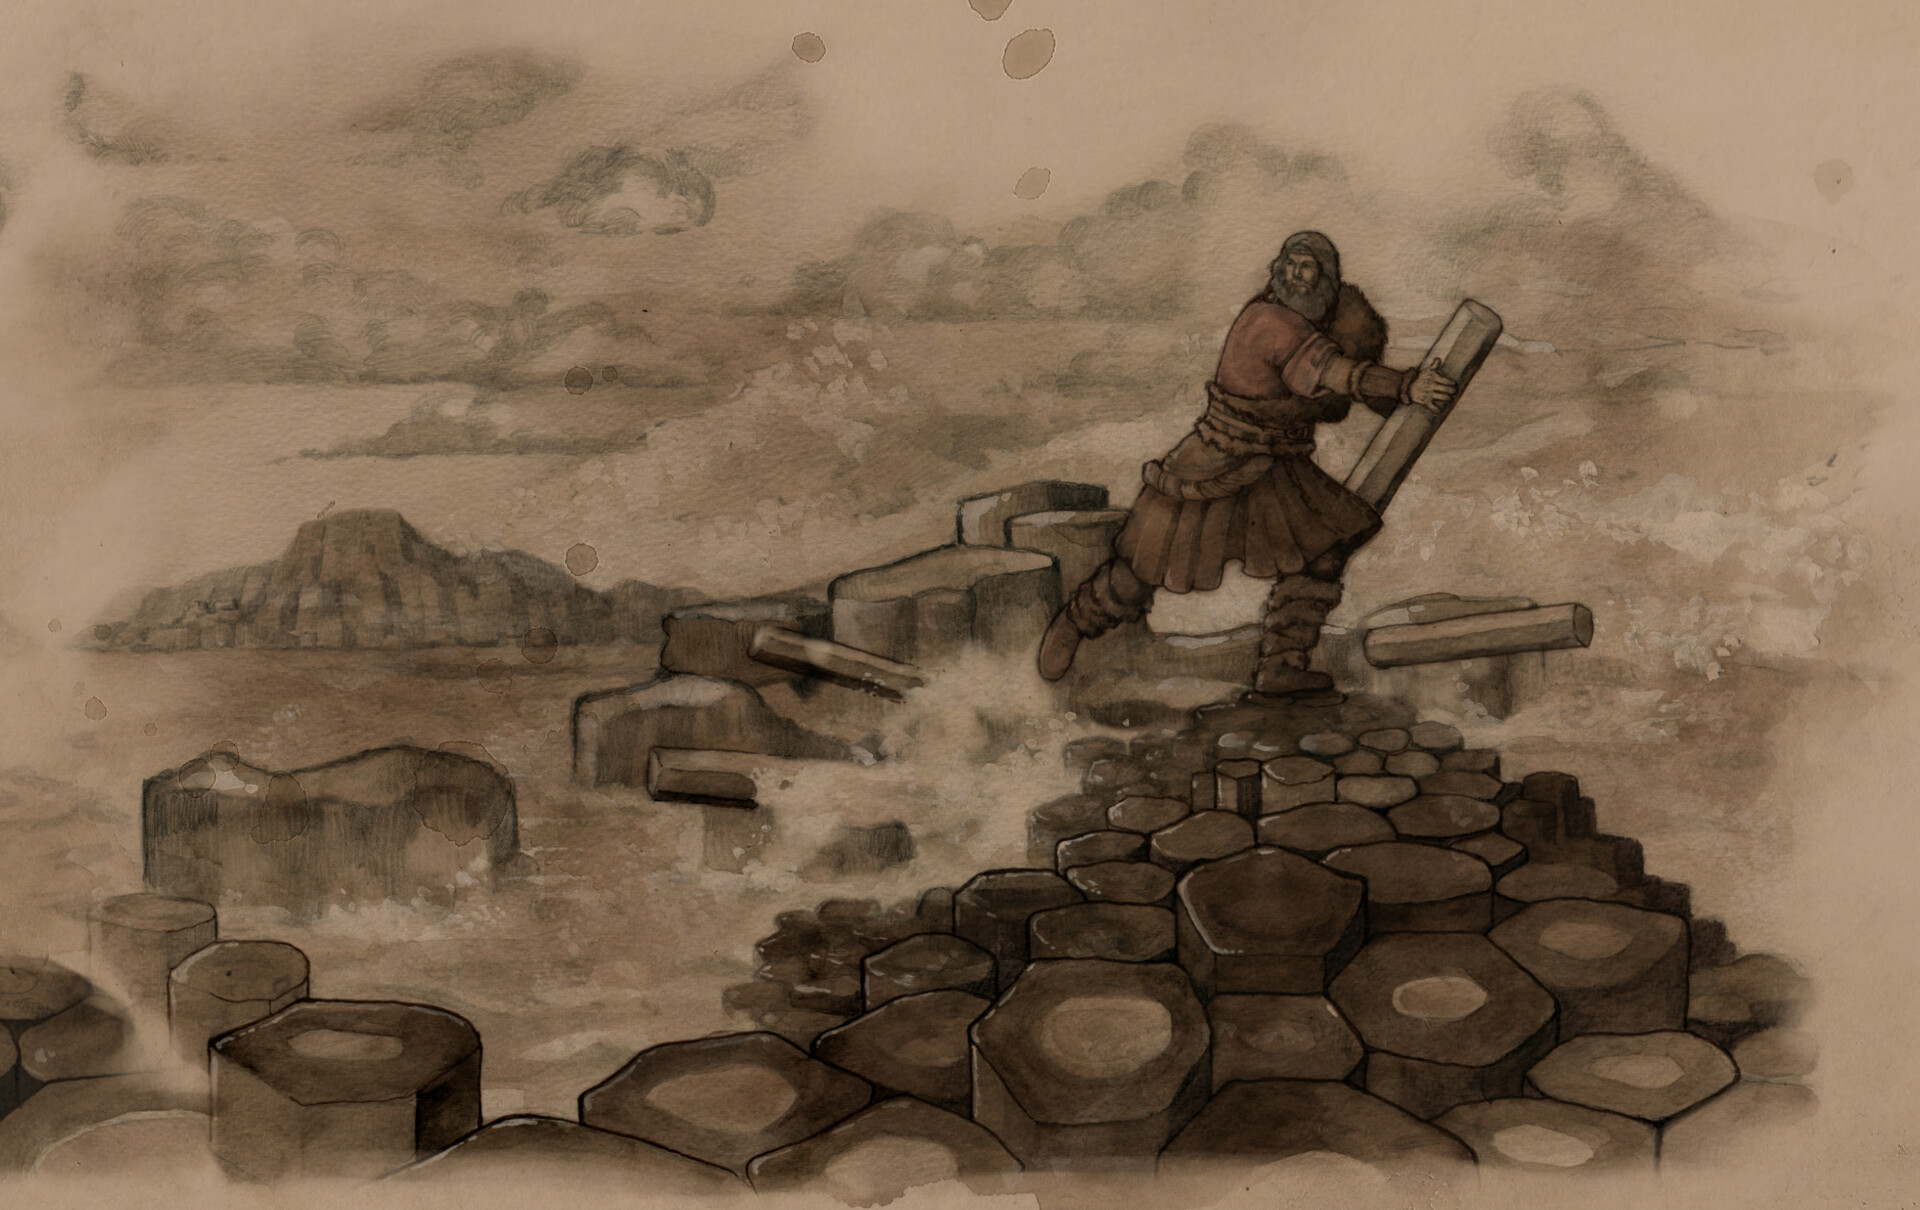 Snippet of the finished scene of Benanndonner destroying the causeway